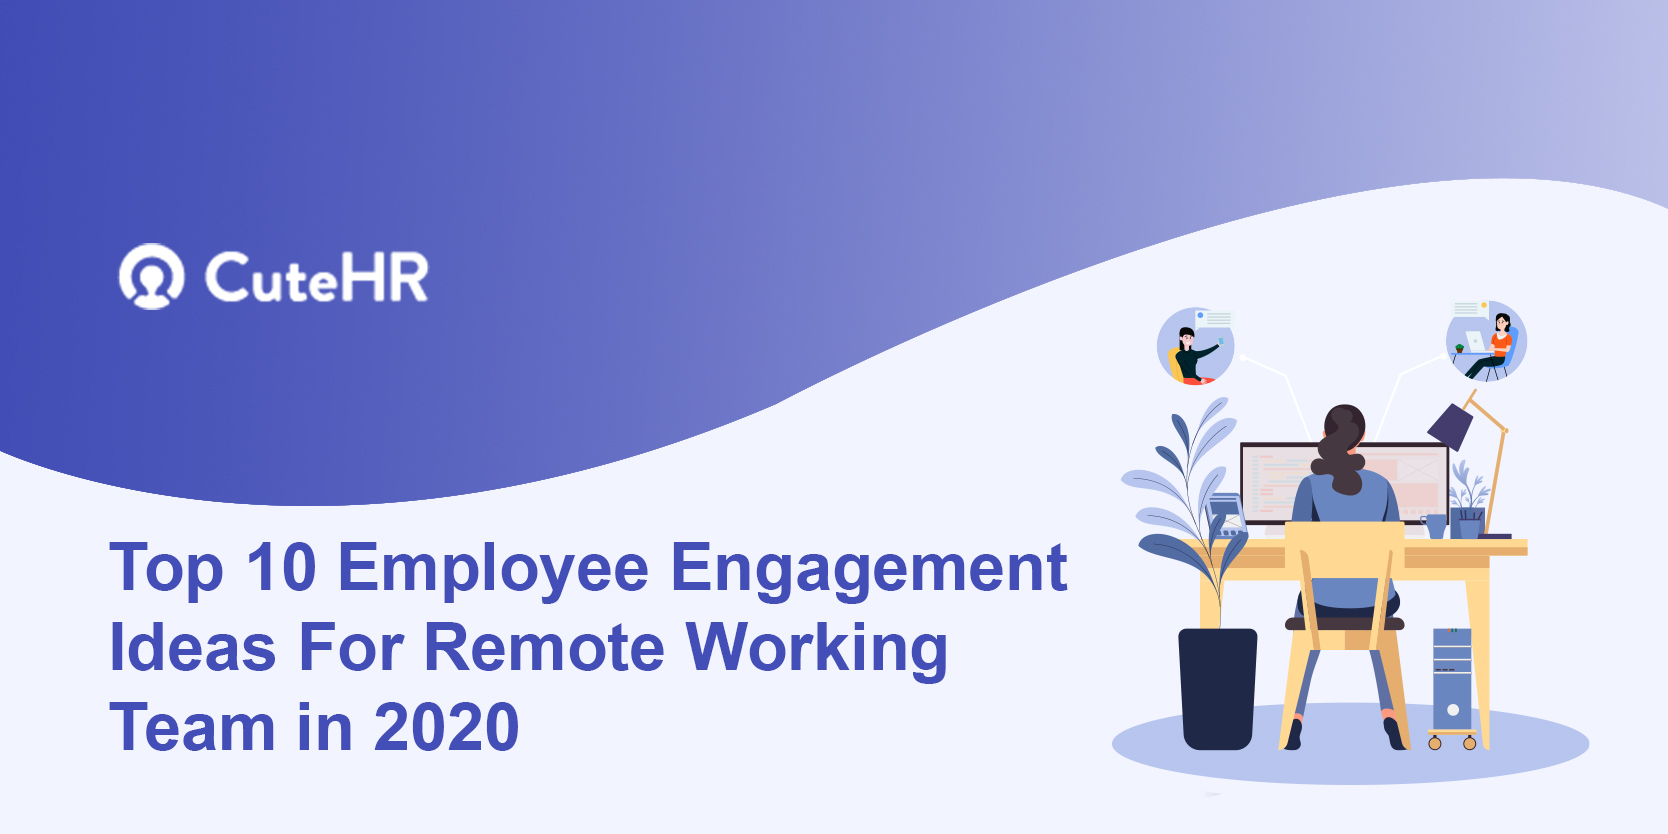 Top 10 Employee Engagement Ideas For Remote Working Team